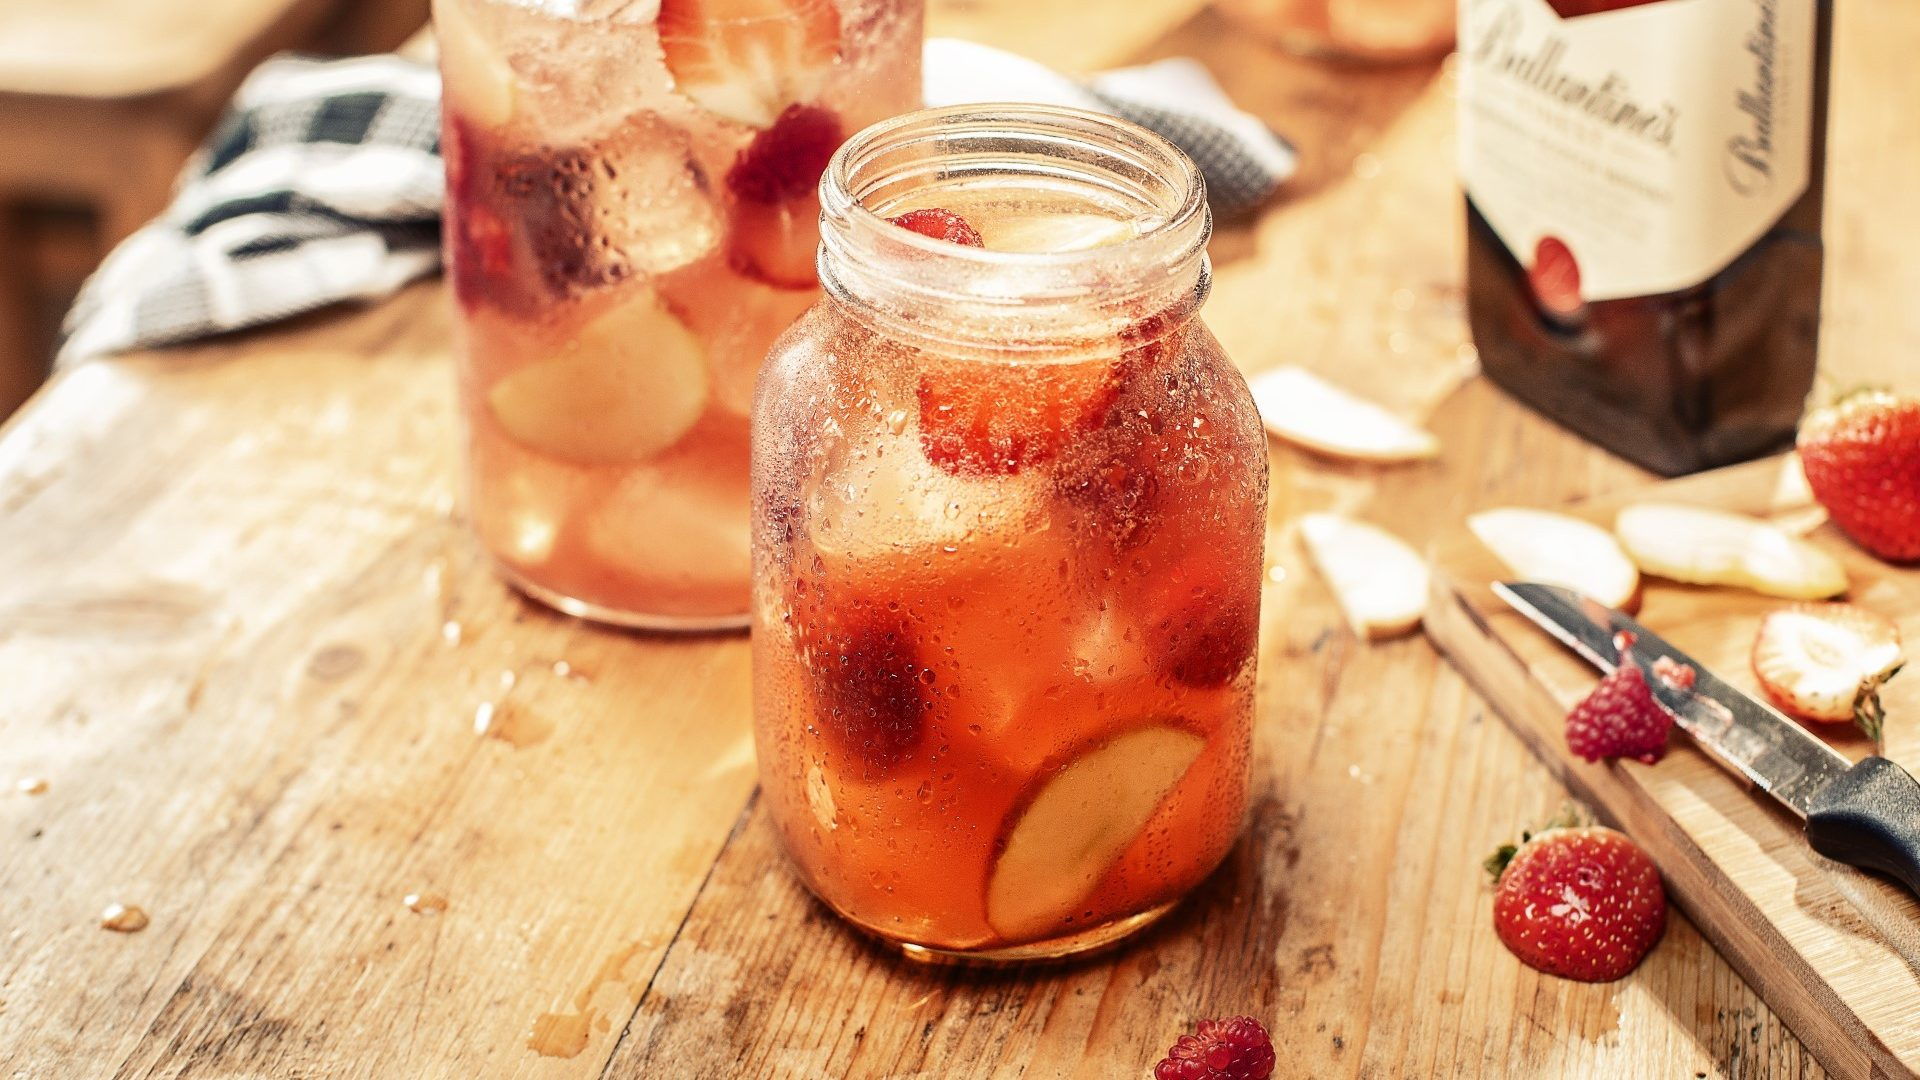 ballantines-finest-stay-berry-pitcher-drink-aspect-ratio-16-9